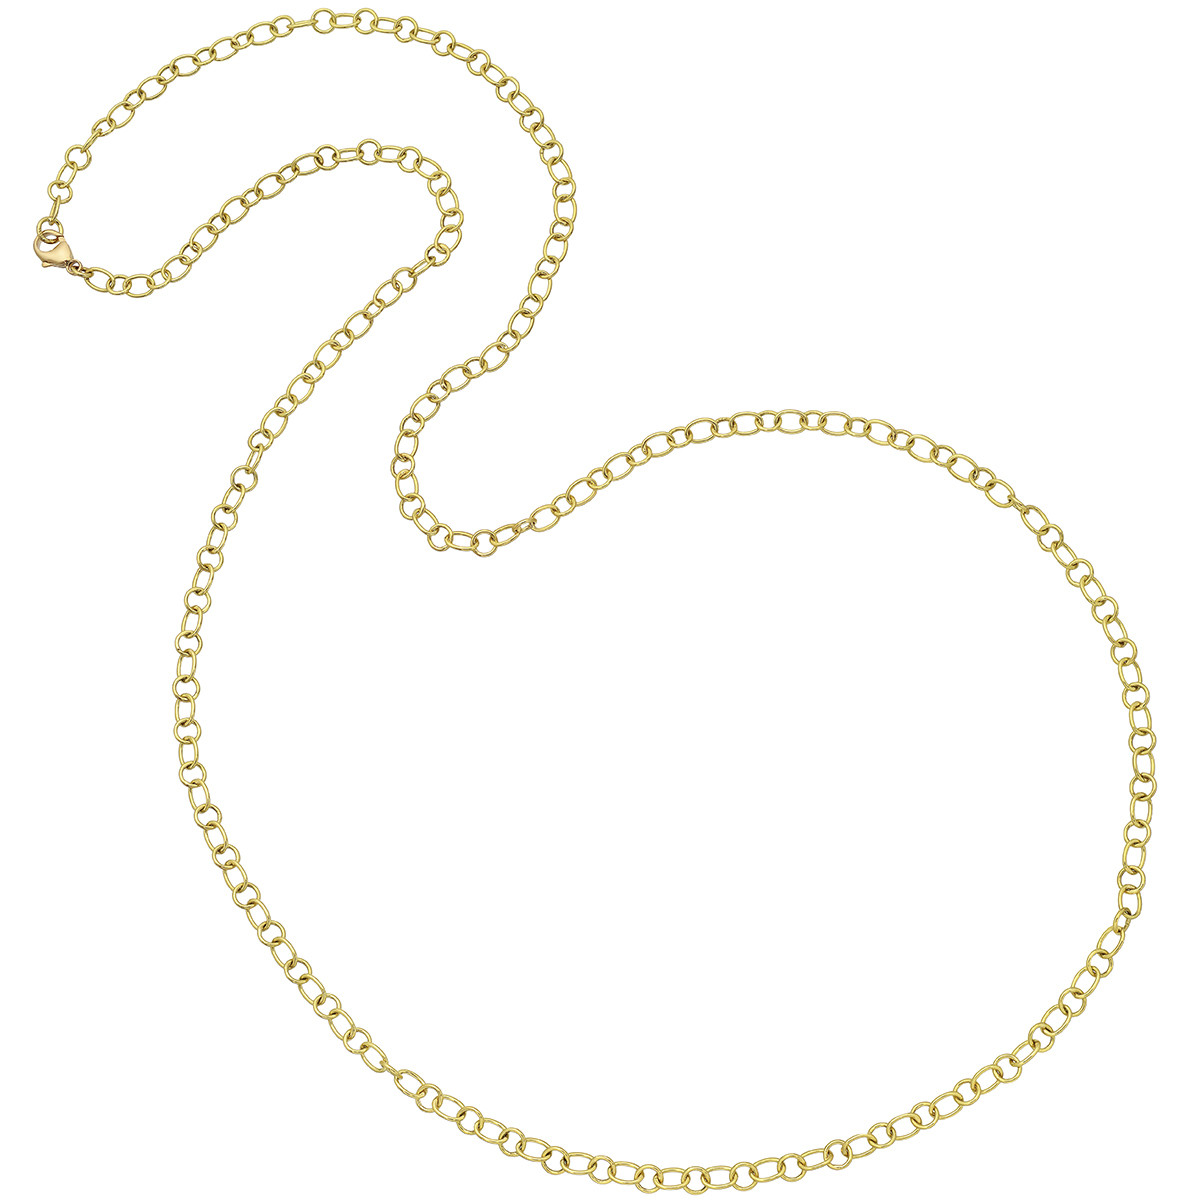 18k Yellow Gold Oval Link Long Necklace